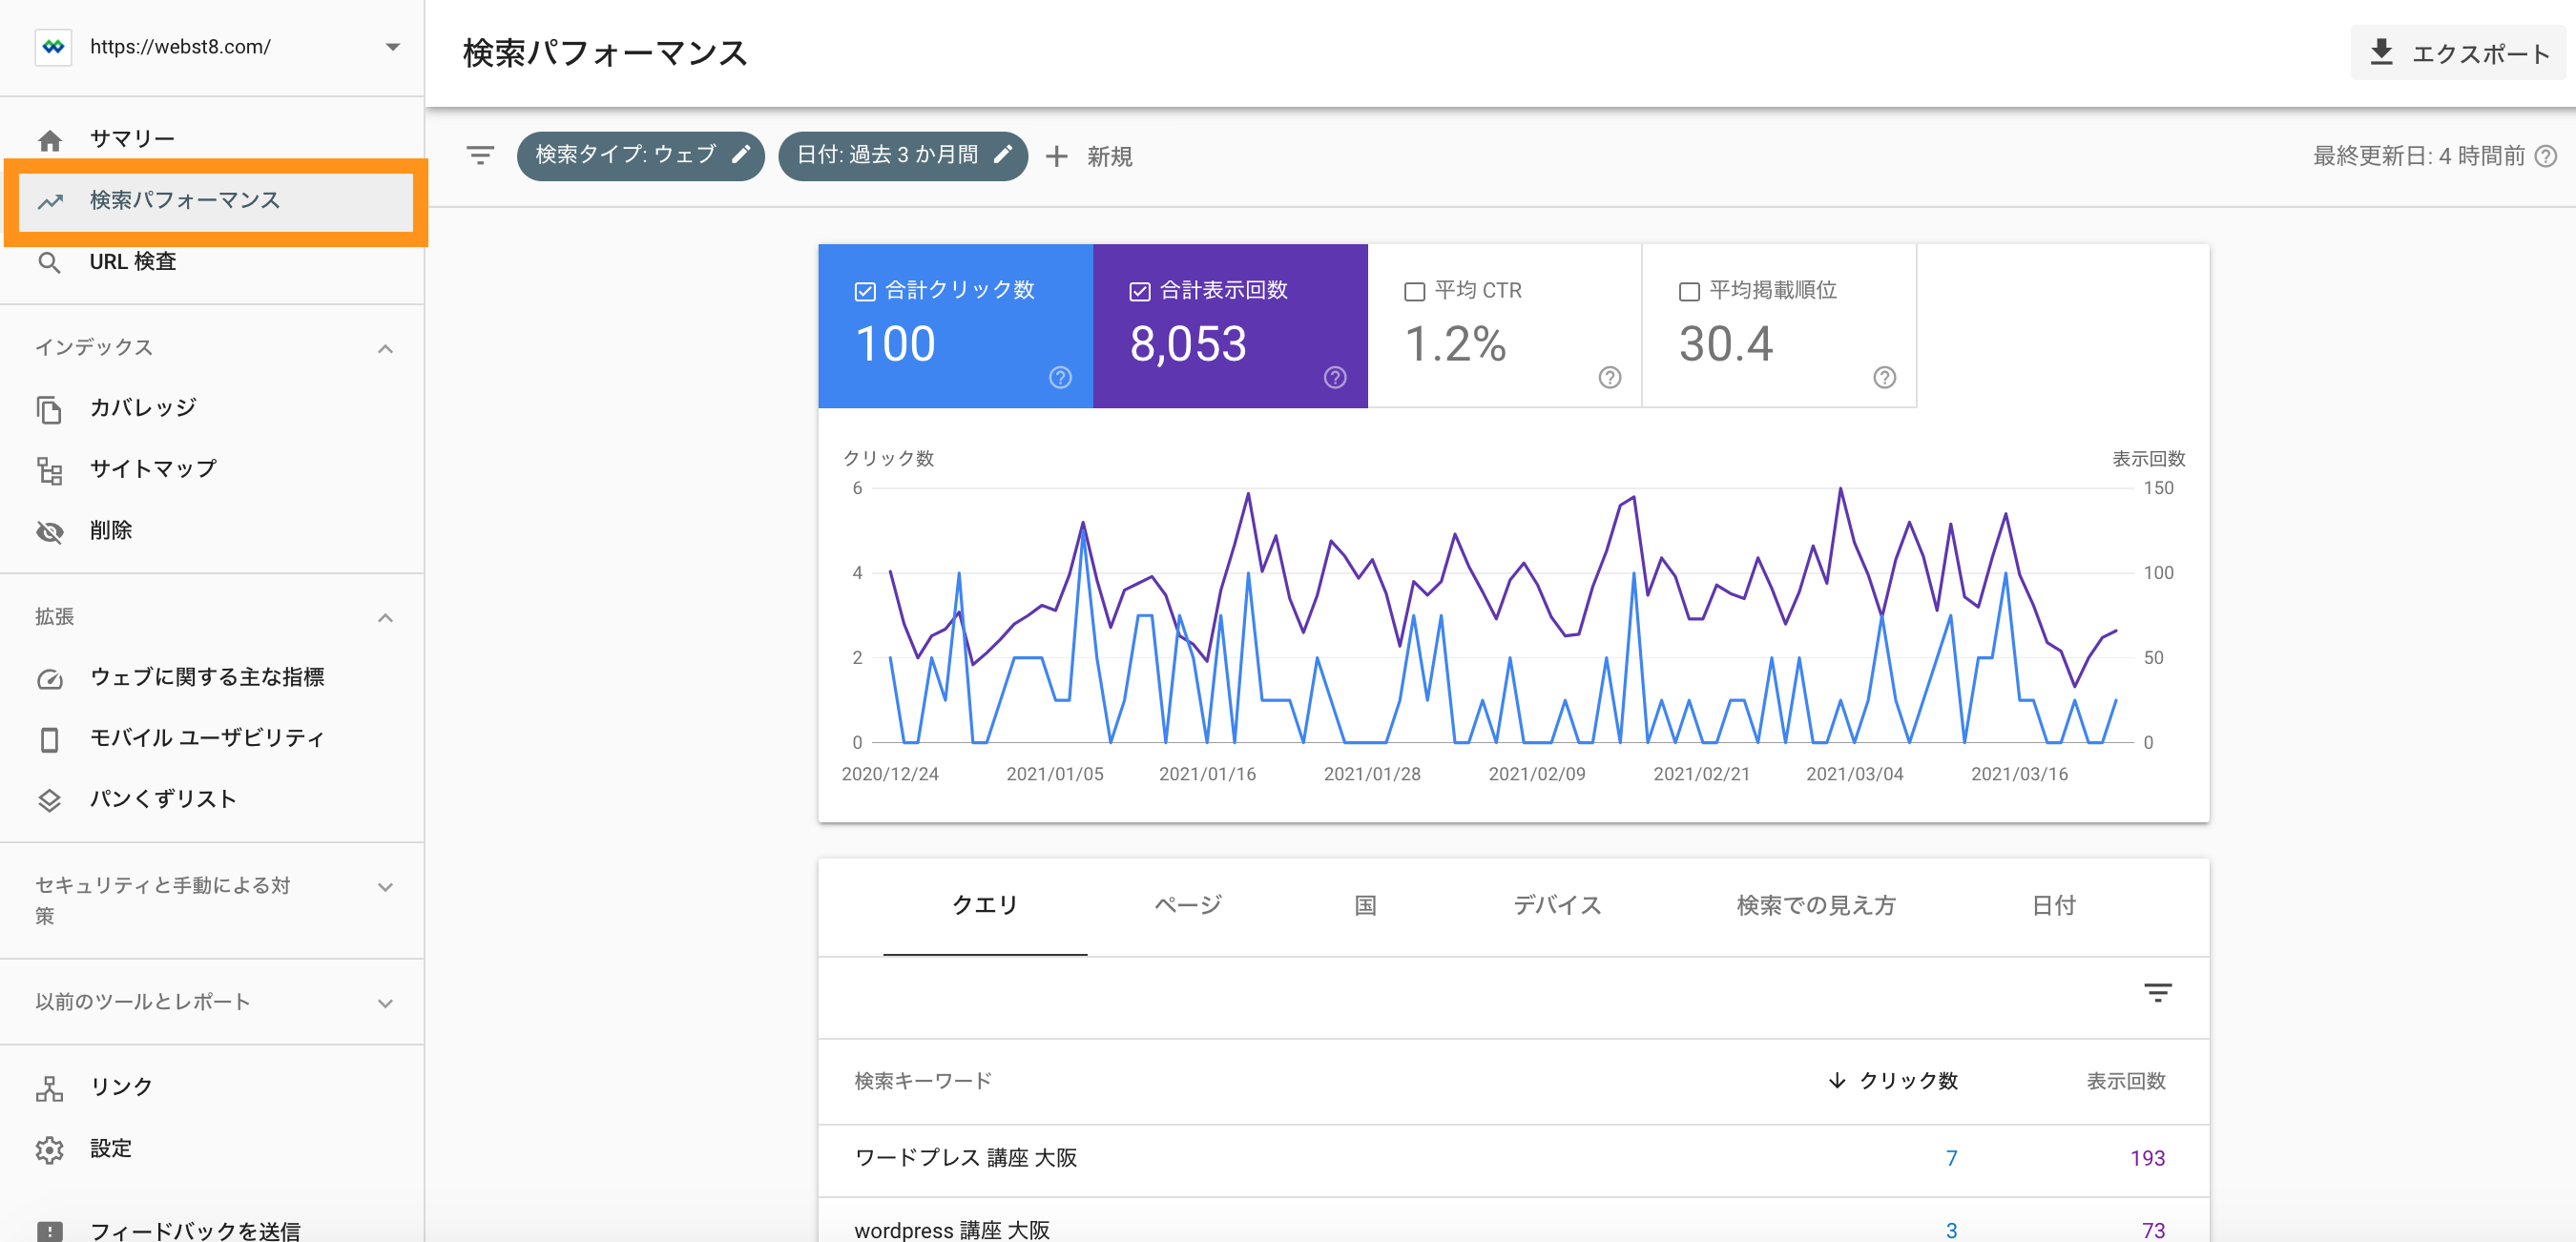 Google Search Console 検索パフォーマンス画面